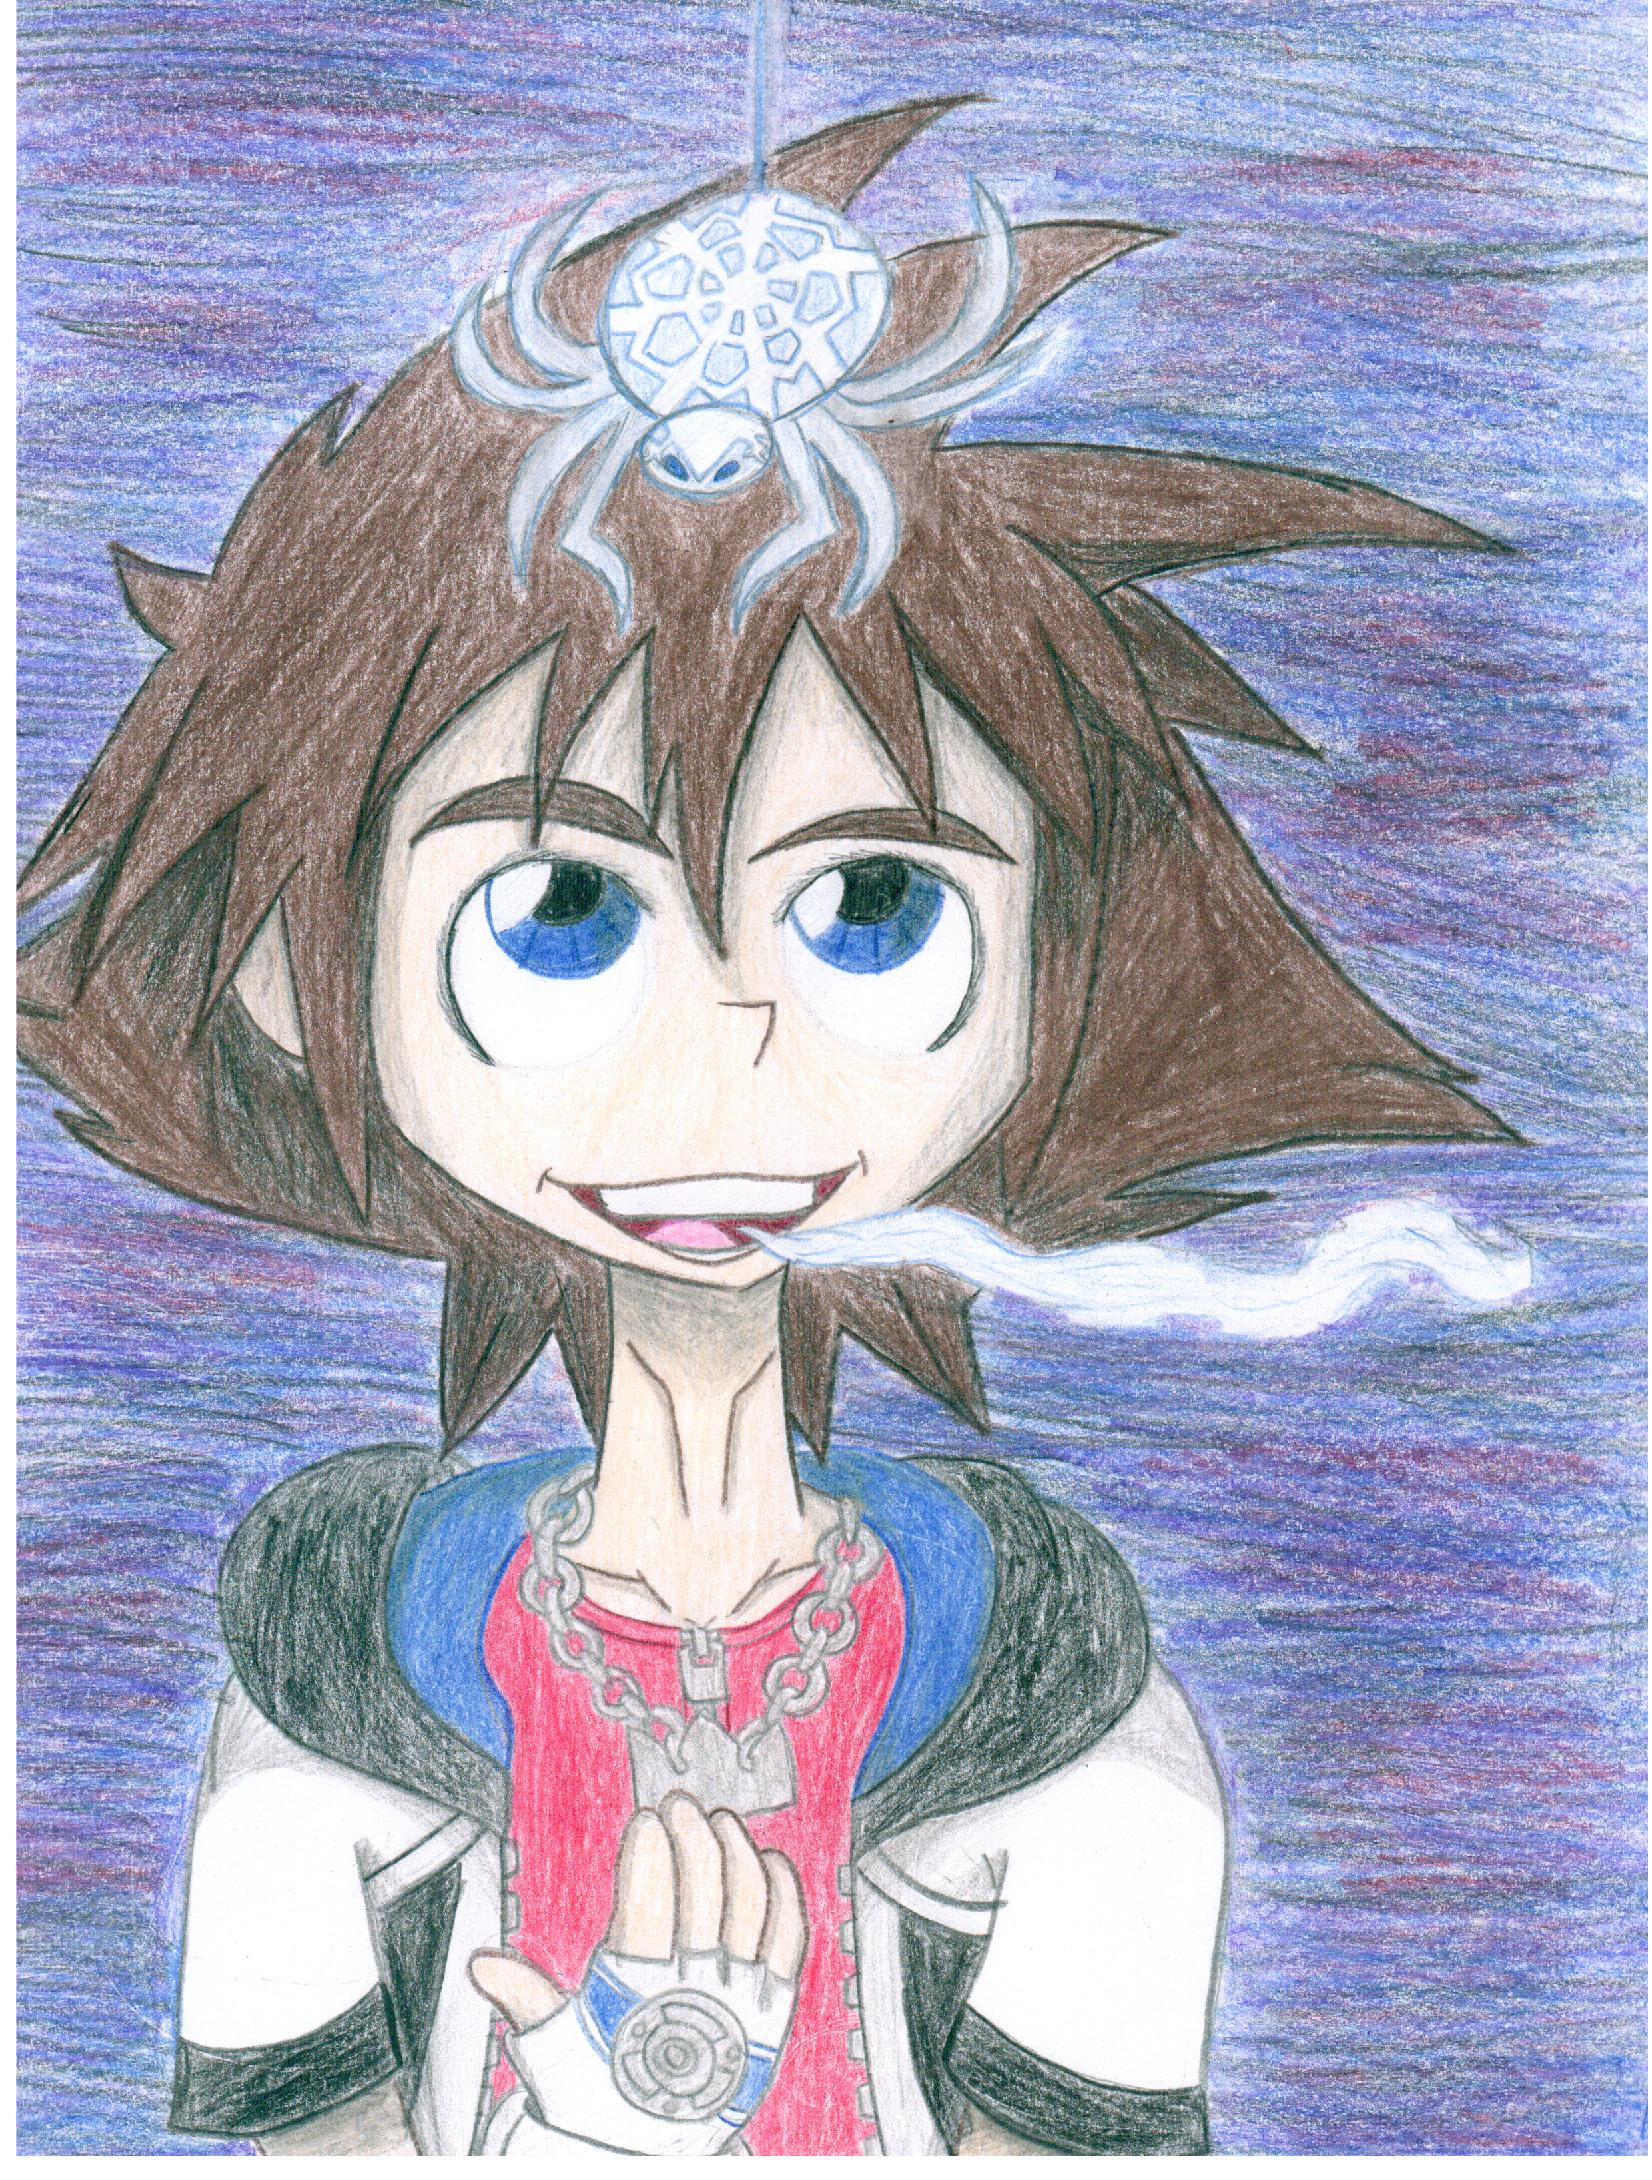 Sora and the Snow Spider by dreamer45